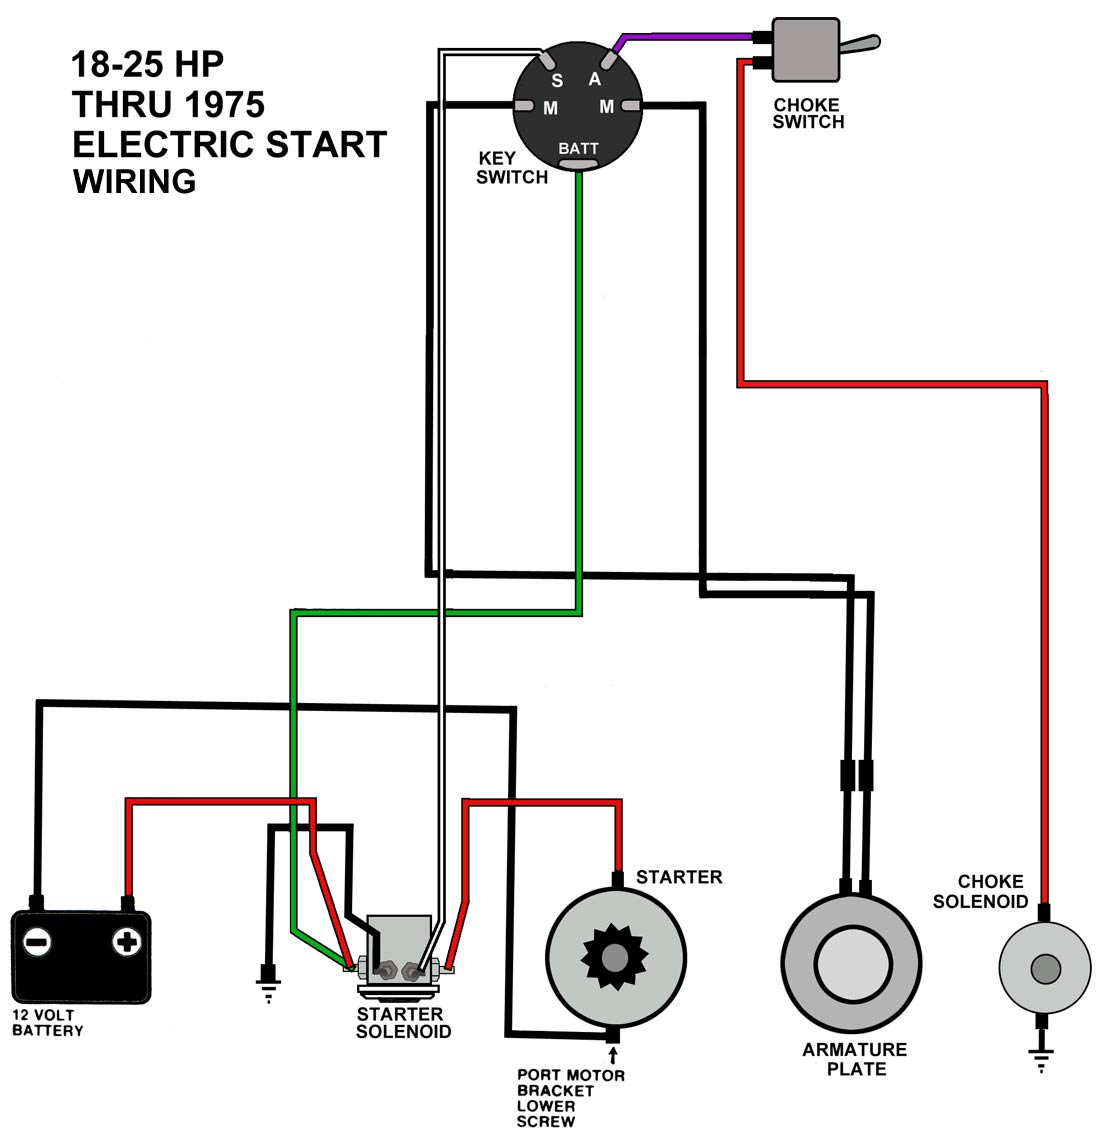 Polaris Starter Solenoid Wiring Diagram And Ebooks Ranger Battery Sel Third Level Rh 12 19 13 Jacobwinterstein Com